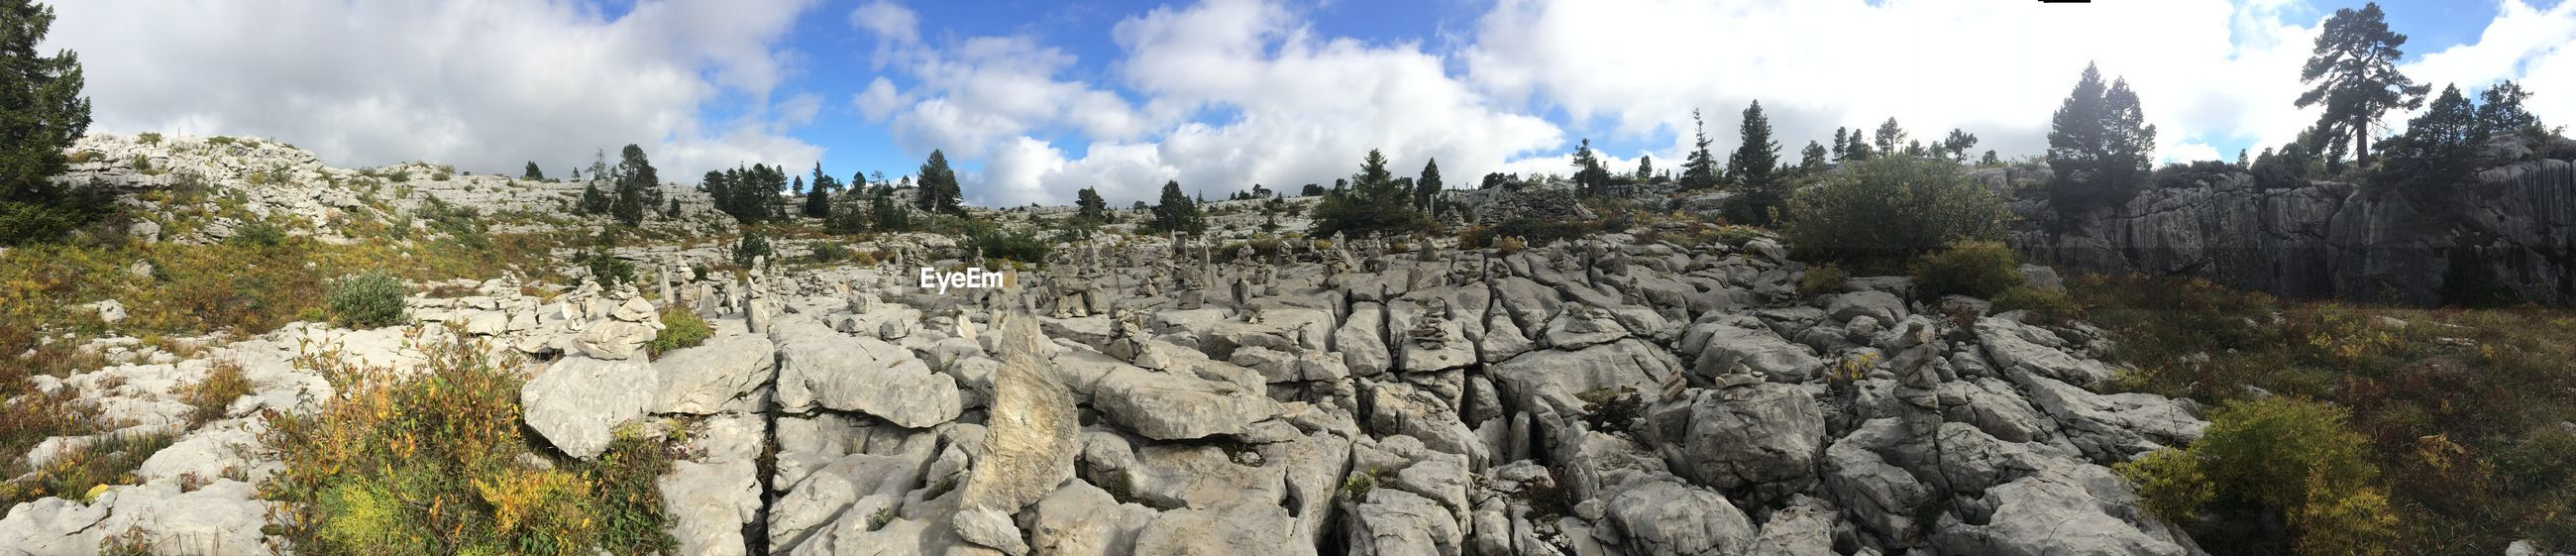 sky, tranquility, tranquil scene, nature, cloud - sky, scenics, beauty in nature, landscape, cloud, panoramic, blue, tree, day, sunlight, non-urban scene, growth, rock - object, low angle view, outdoors, no people